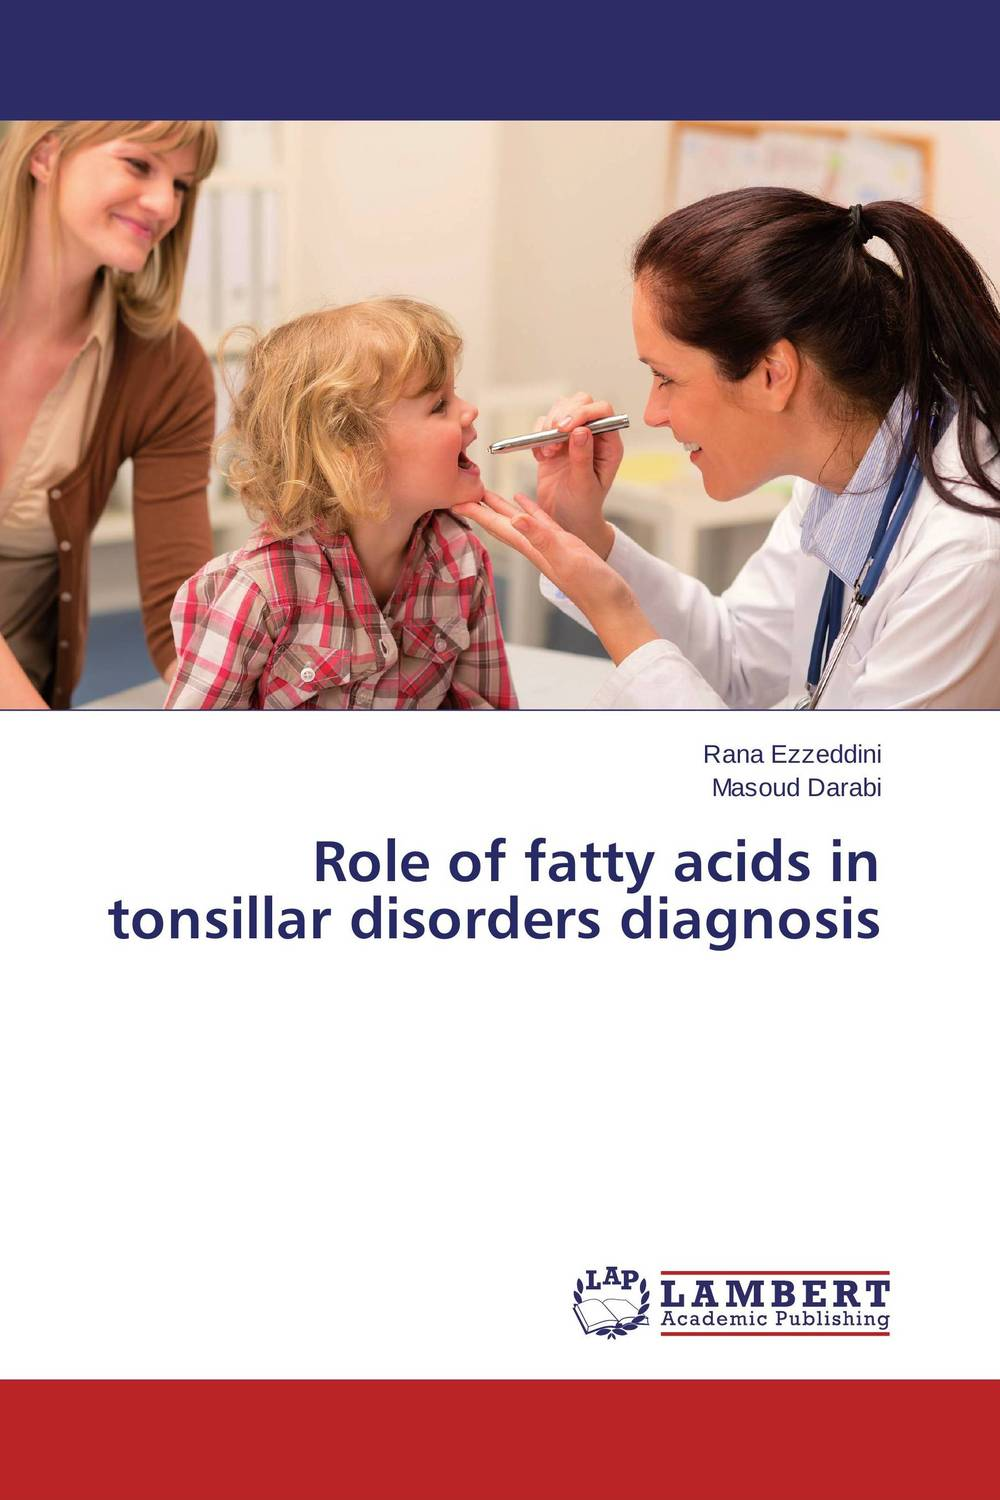 Role of fatty acids in tonsillar disorders diagnosis evaluation of aqueous solubility of hydroxamic acids by pls modelling